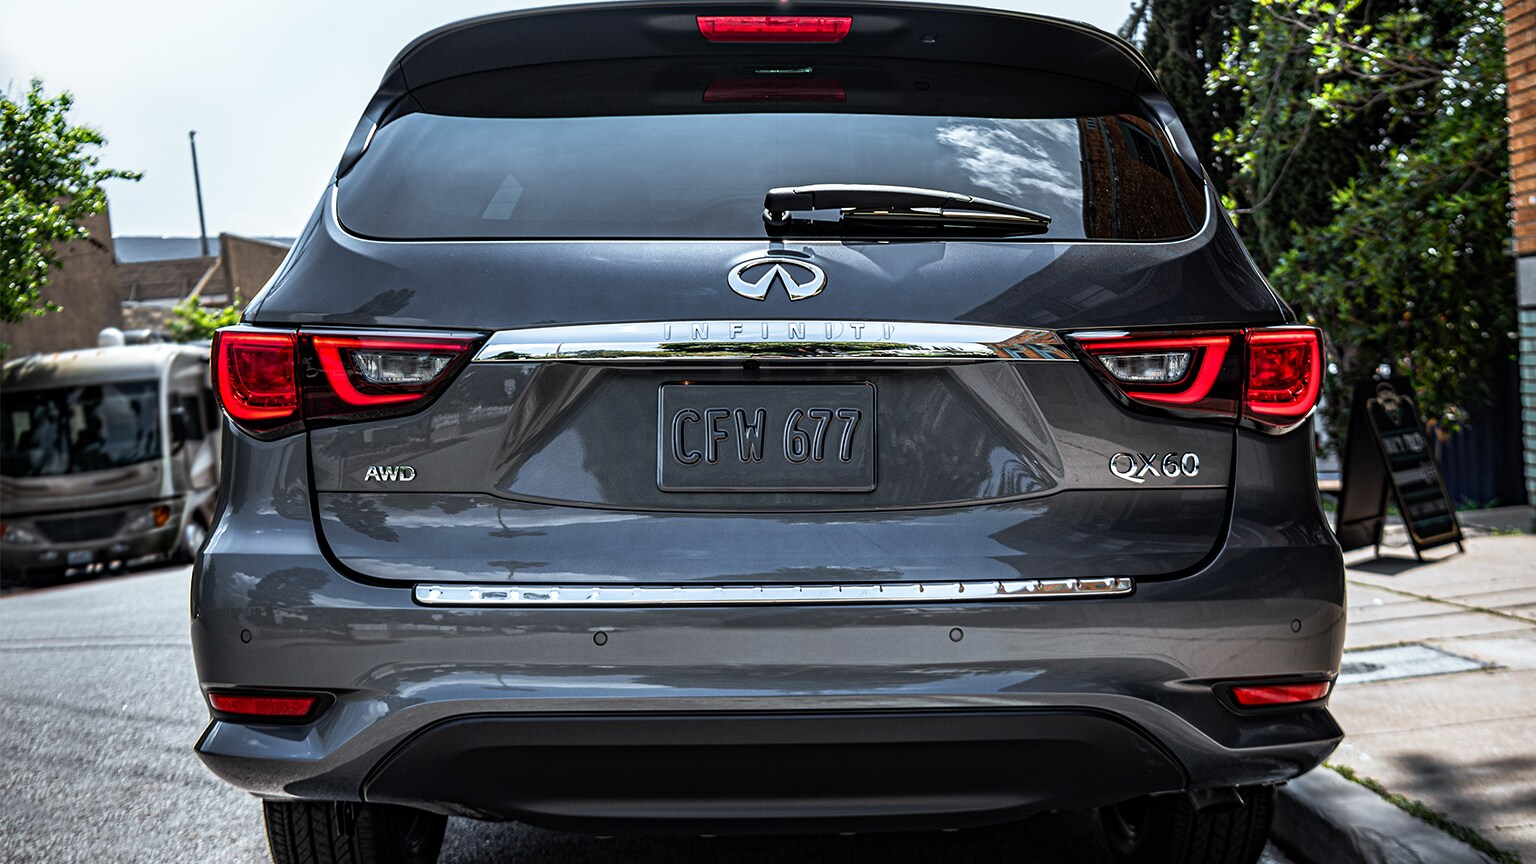 2020 INFINITI QX60 Towing & Performance Features